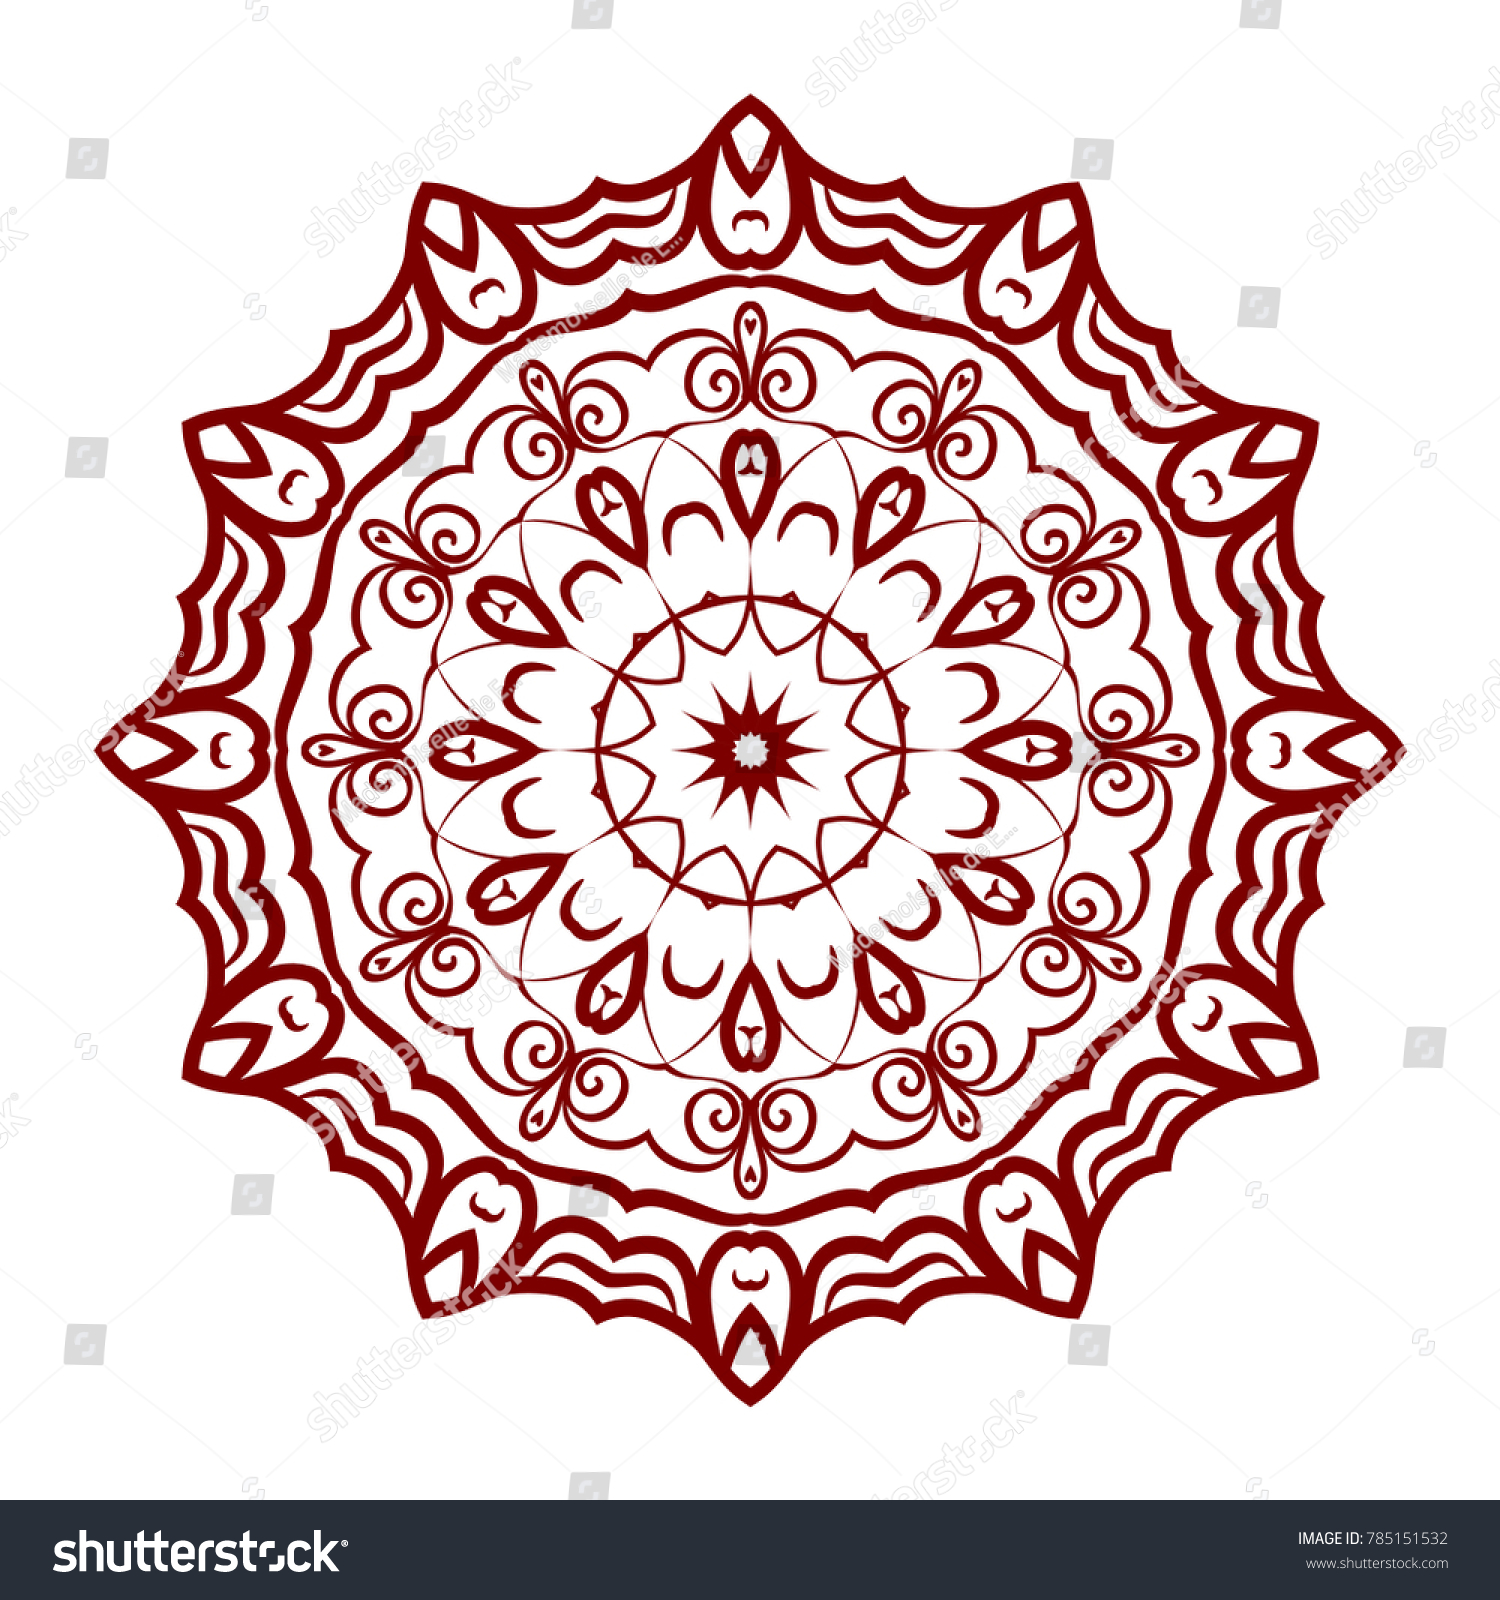 Abstract Flower Design Mandala Decorative Round Stock Vector HD ...